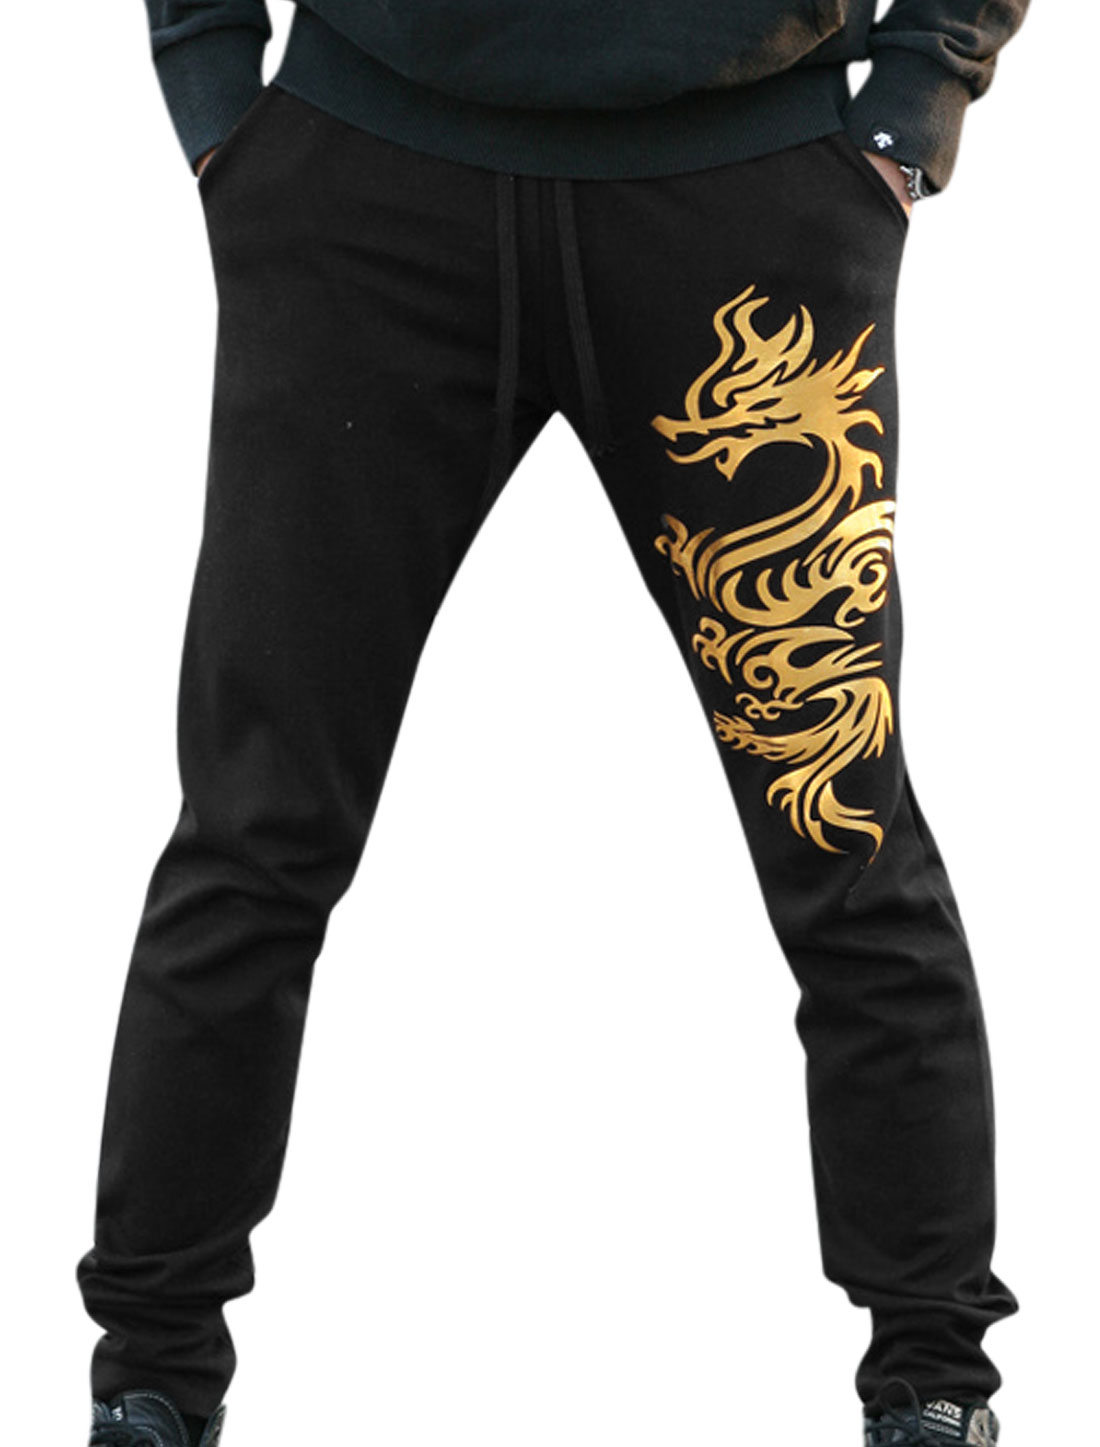 Men Dragon Prints Drawstring Elastic Waist Casual Pants Black W30